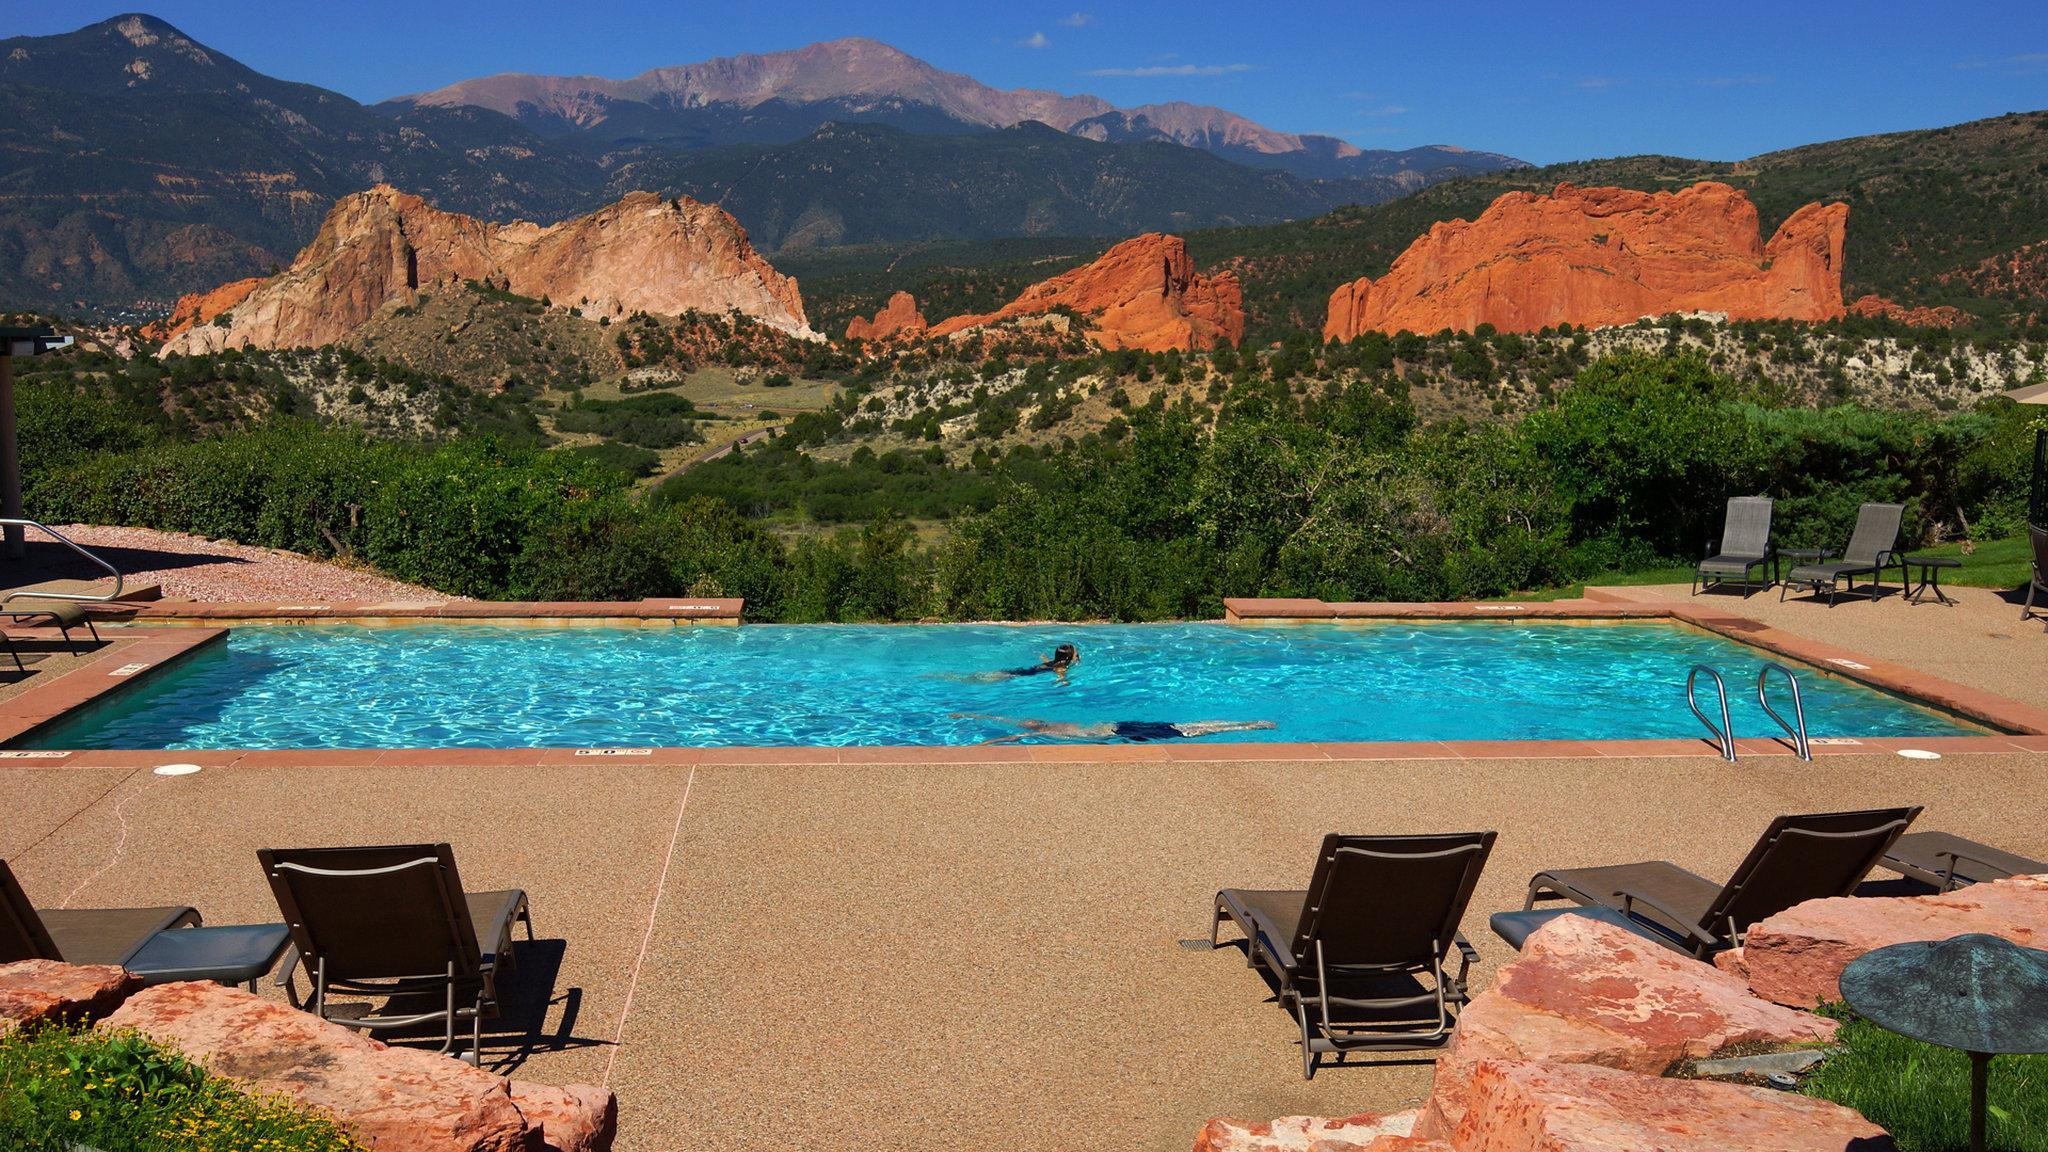 Garden of the Gods Club \u0026 Resort in Colorado Springs (CO